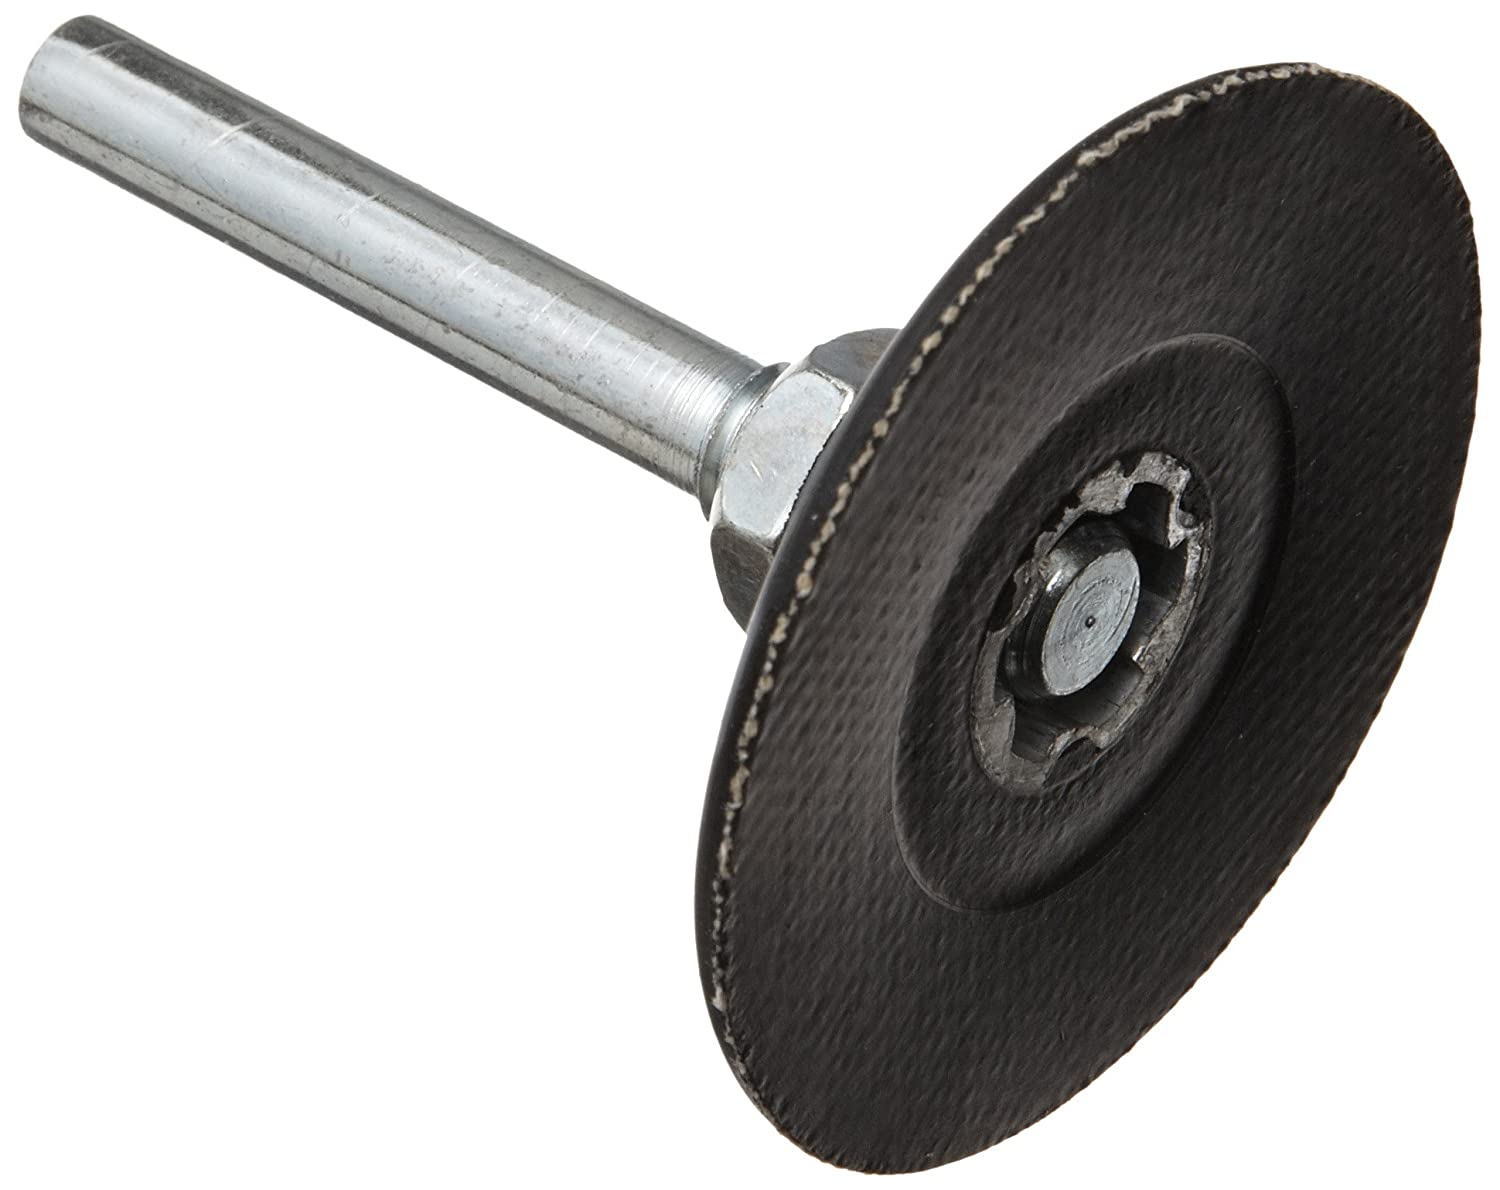 Merit Abrasotex Quick-Change Abrasive Disc Holder, Type I, 2' Diameter, 30000 rpm, Grit Medium (Pack of 1) 2 Diameter St. Gobain Abrasives 08834164004